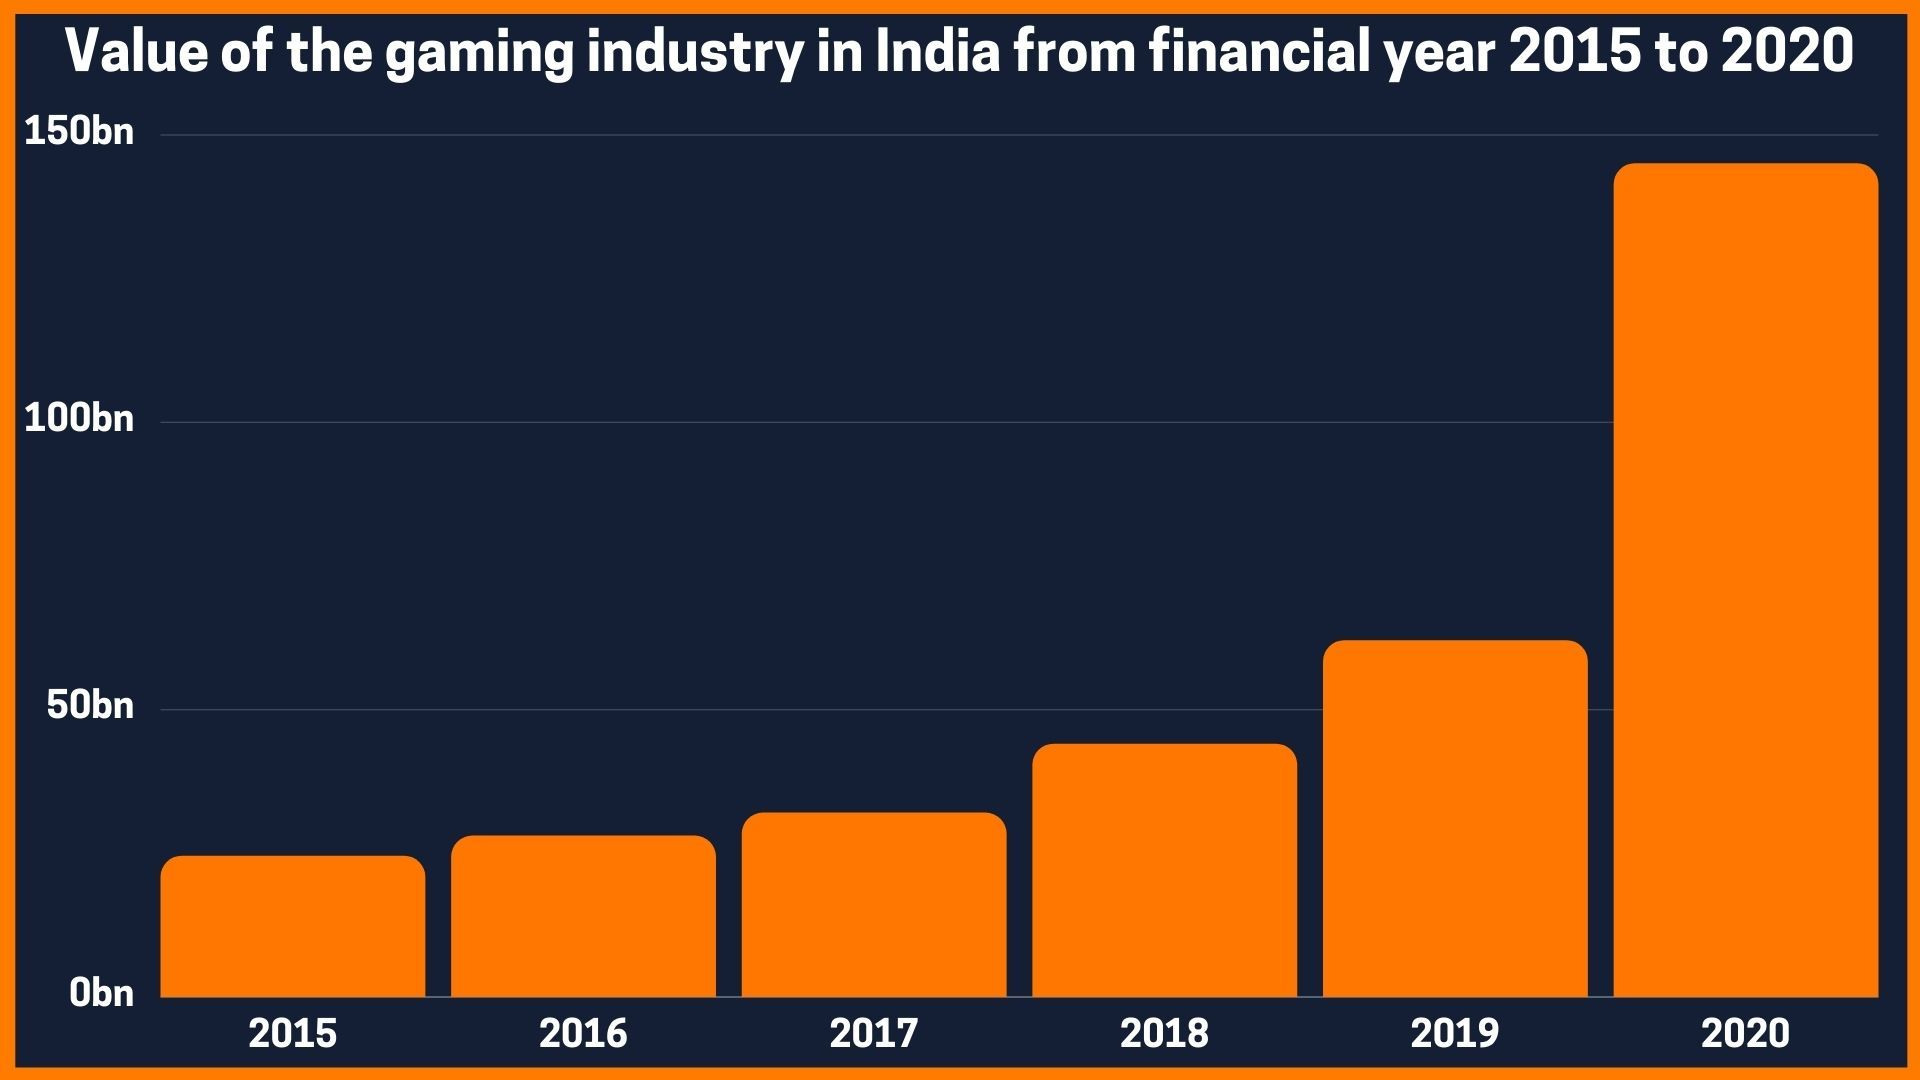 Value of the gaming industry in India from financial year 2015 to 2020